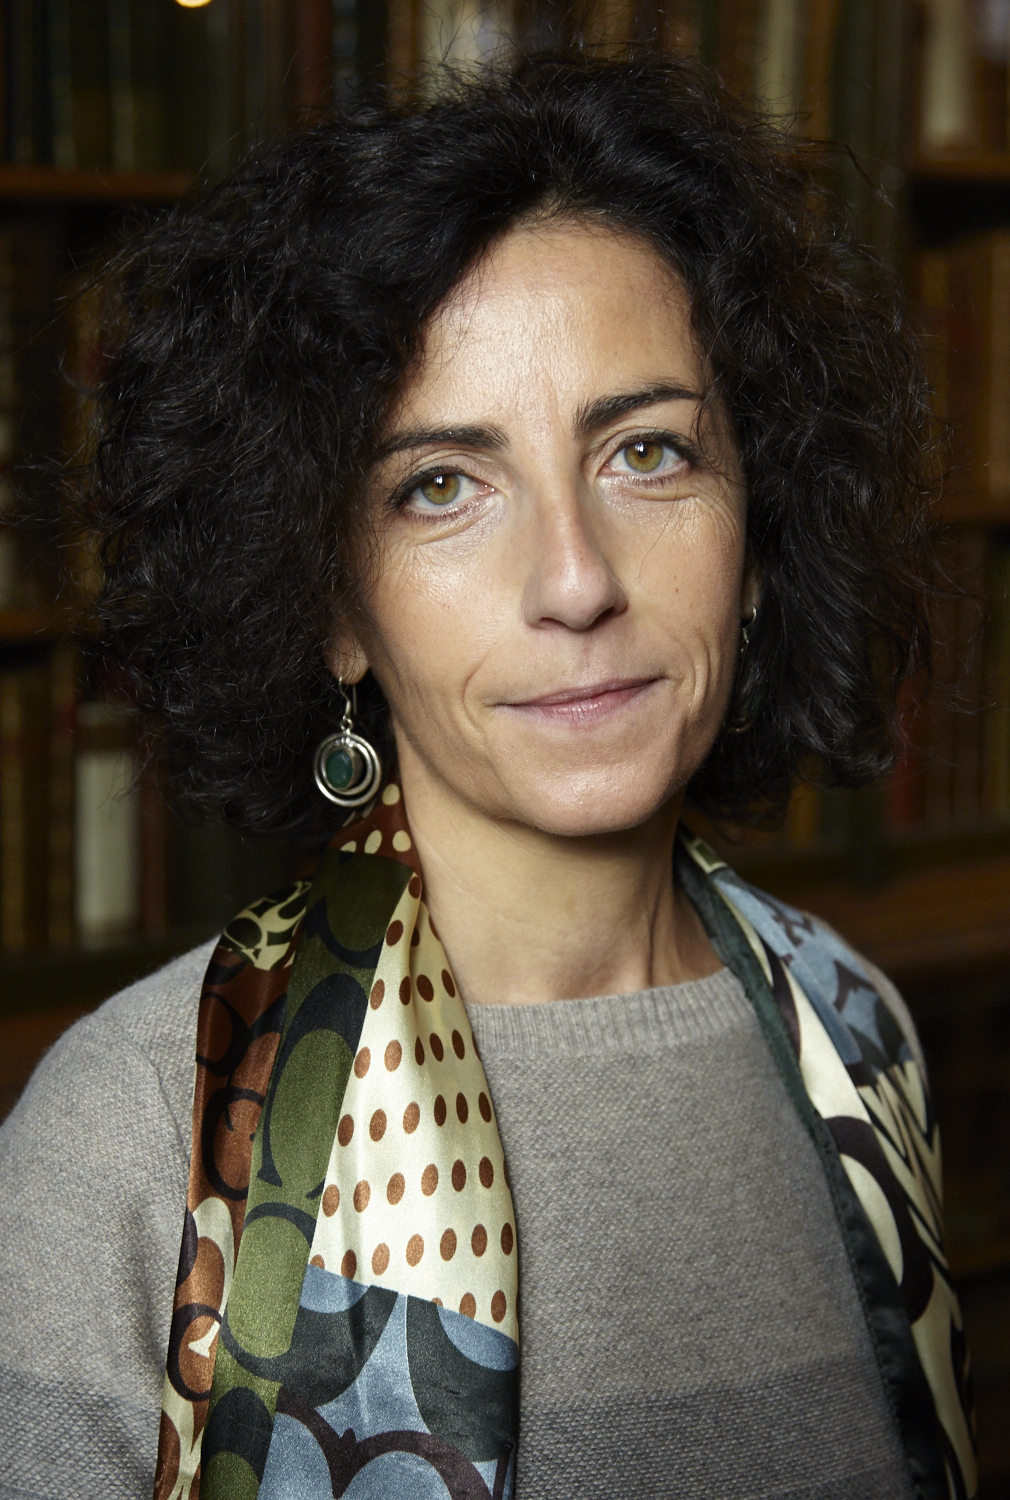 Dr Roberta Mazza, who has been following the papyrus fragment controversy since 2012